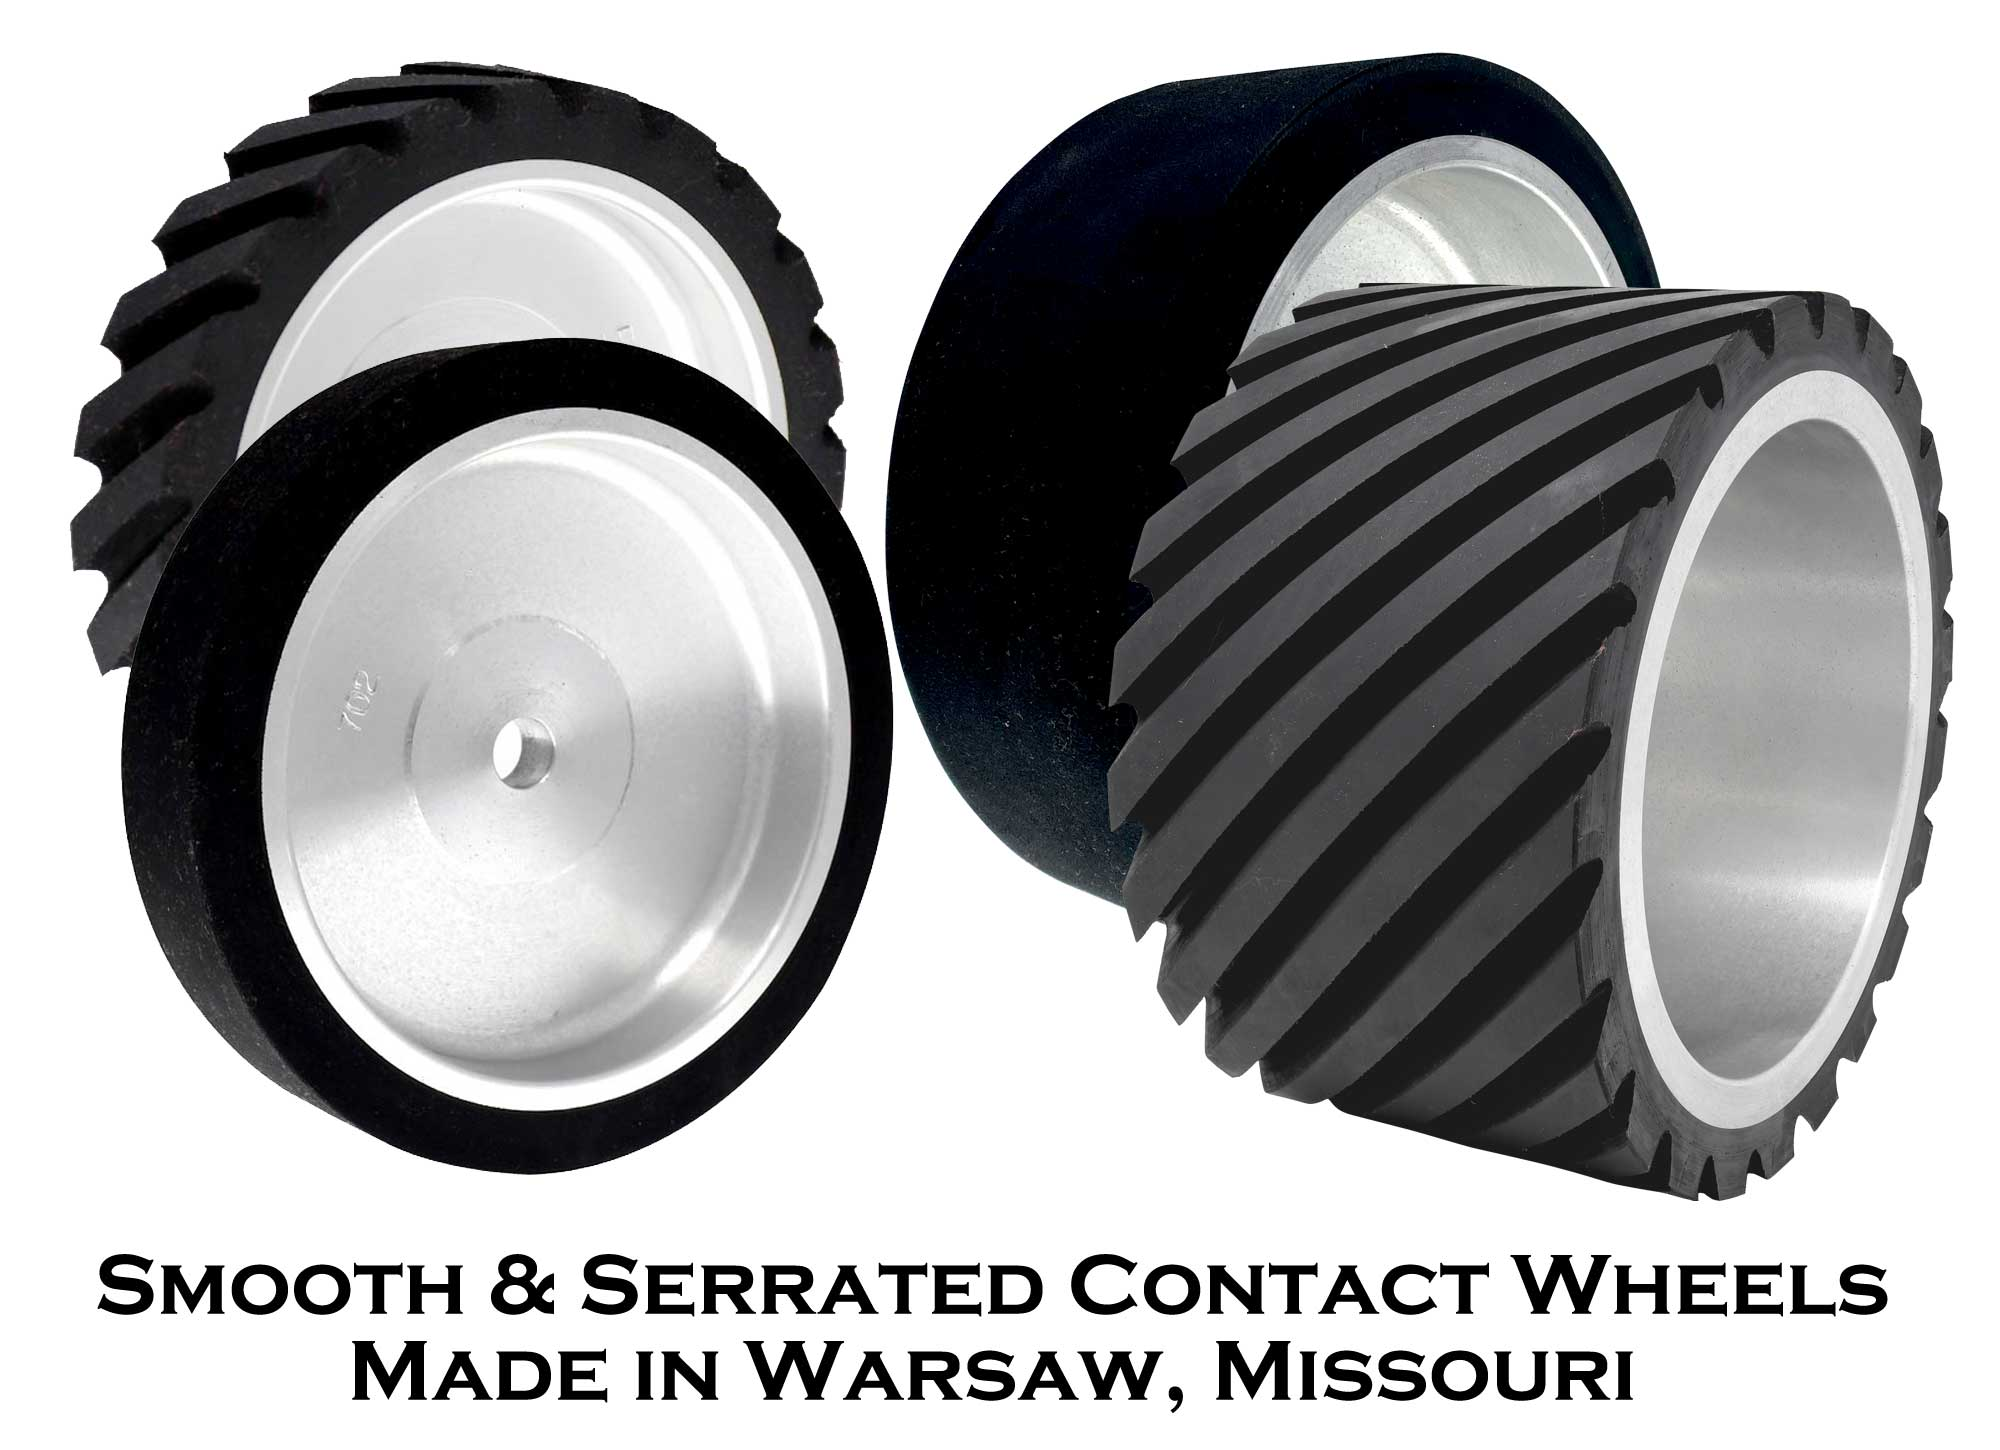 Smooth and Serrated Contact Wheels - 55 & 90 Duro Neoprene Rubber